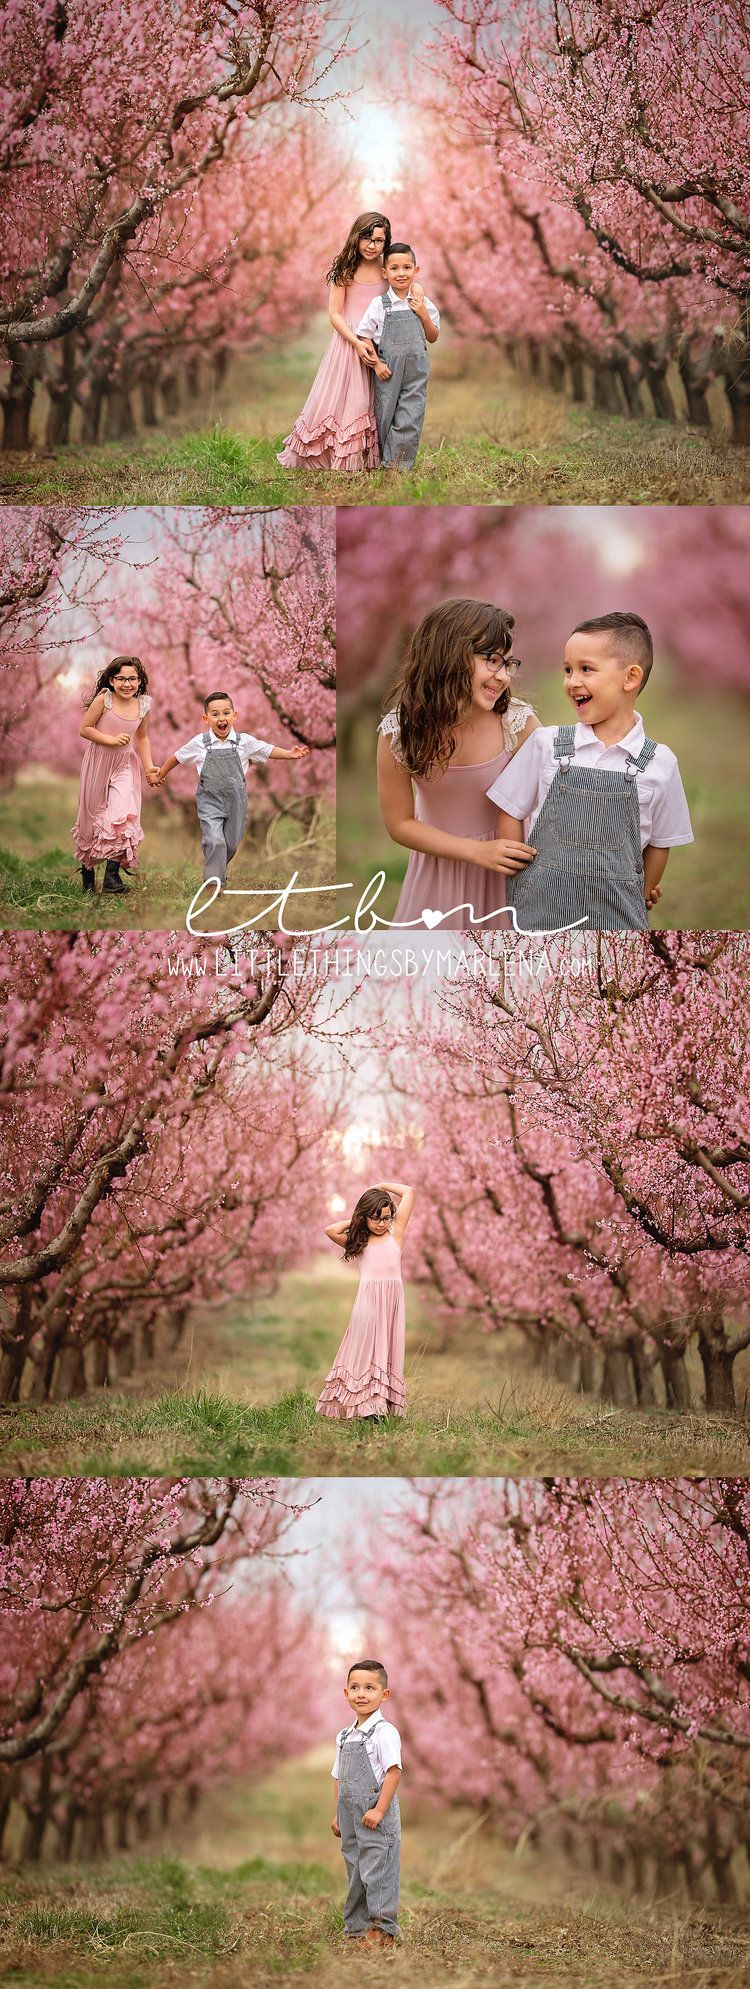 Spring Blossoms Cherry Blossom Session Orchards Photoshoot Pink Blooms Flowy Dress Sib Cherry Blossom Pictures Spring Family Pictures Spring Portraits